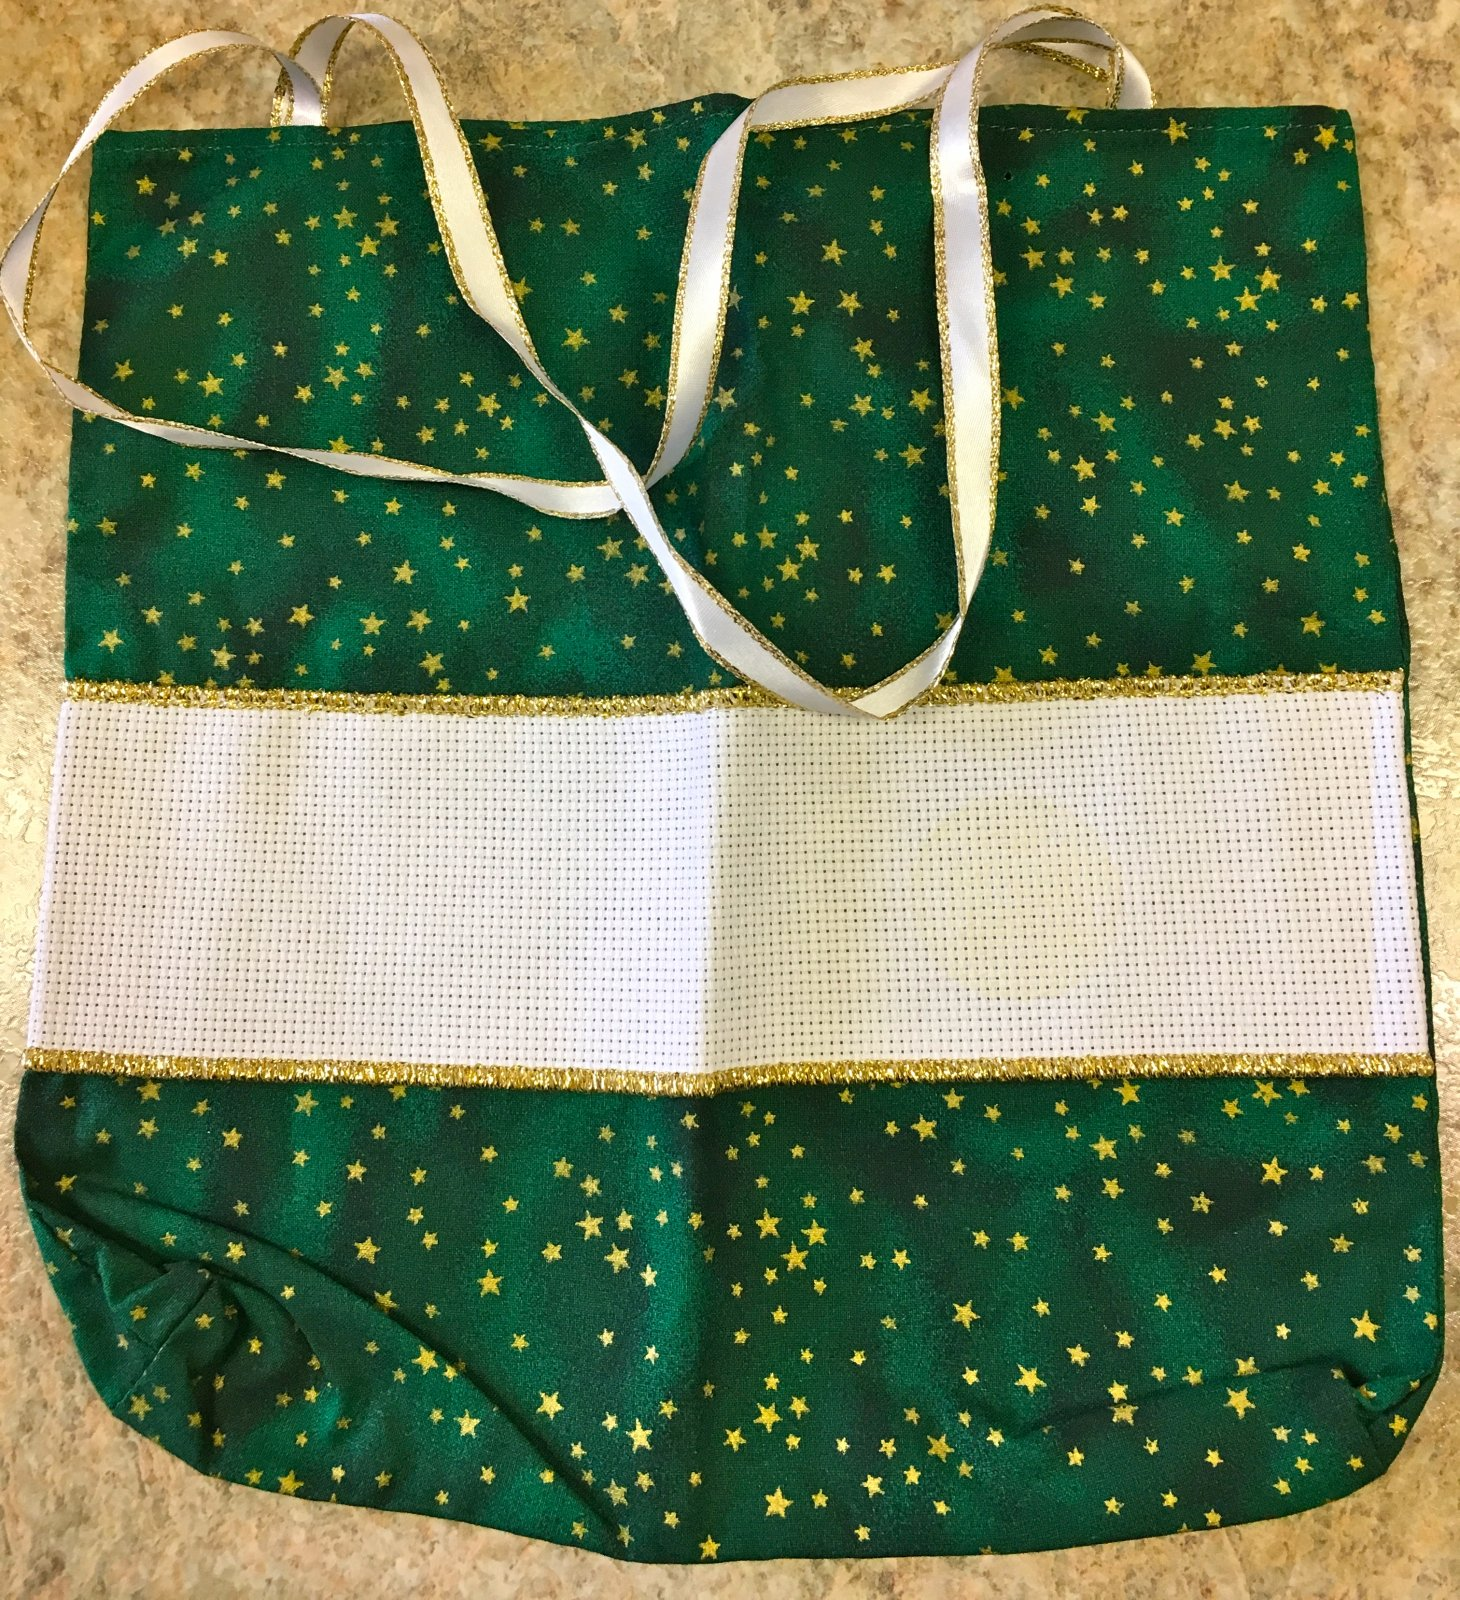 Green and Gold Bag with an Aida Band